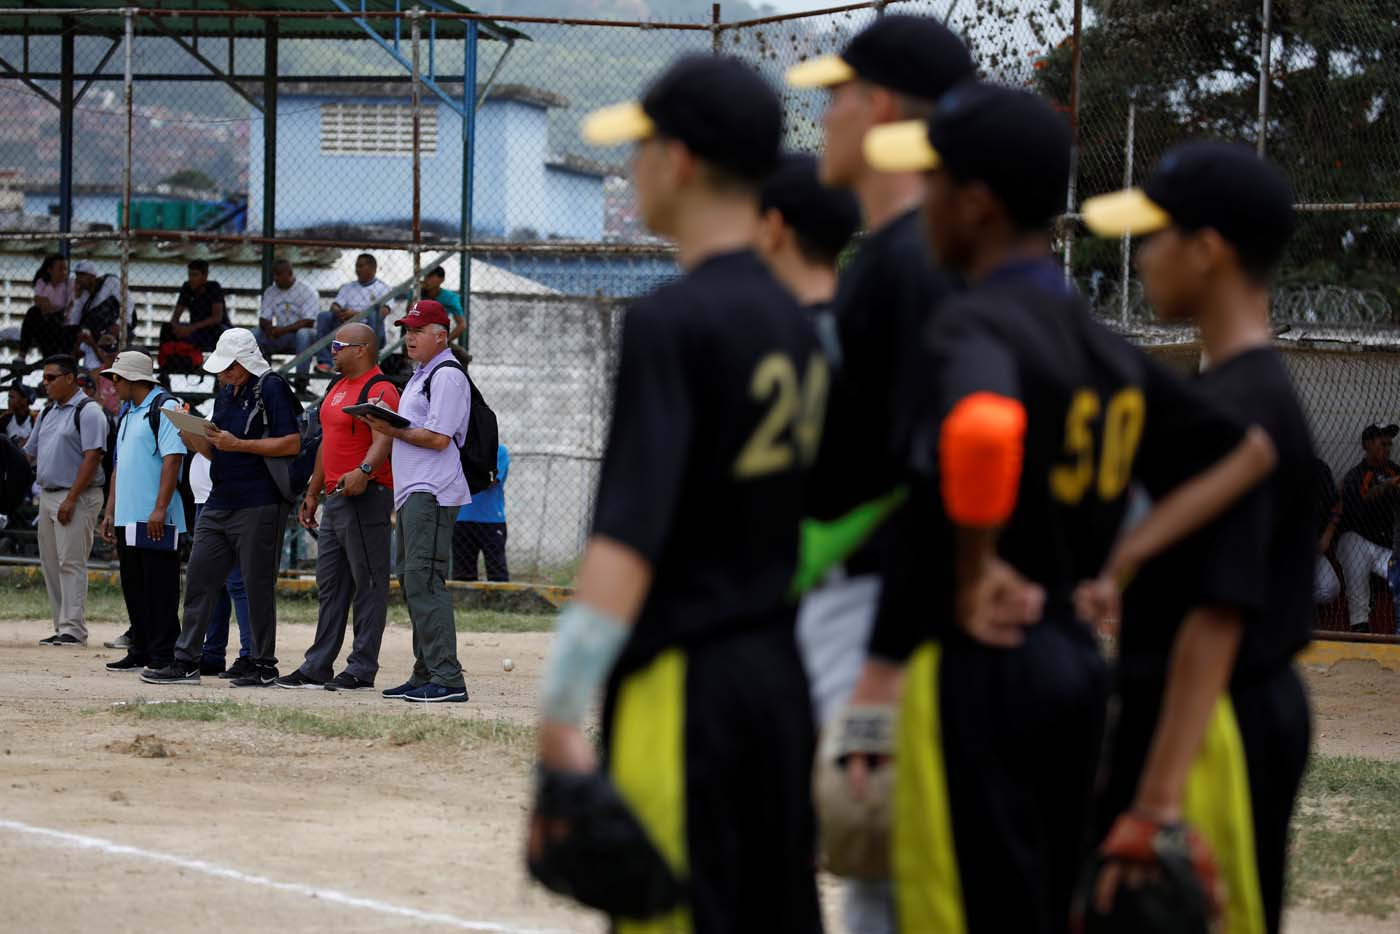 Trainers and scouts look at the players during a baseball showcase in Caracas, Venezuela August 25, 2017. Picture taken August 25, 2017. REUTERS/Carlos Garcia Rawlins